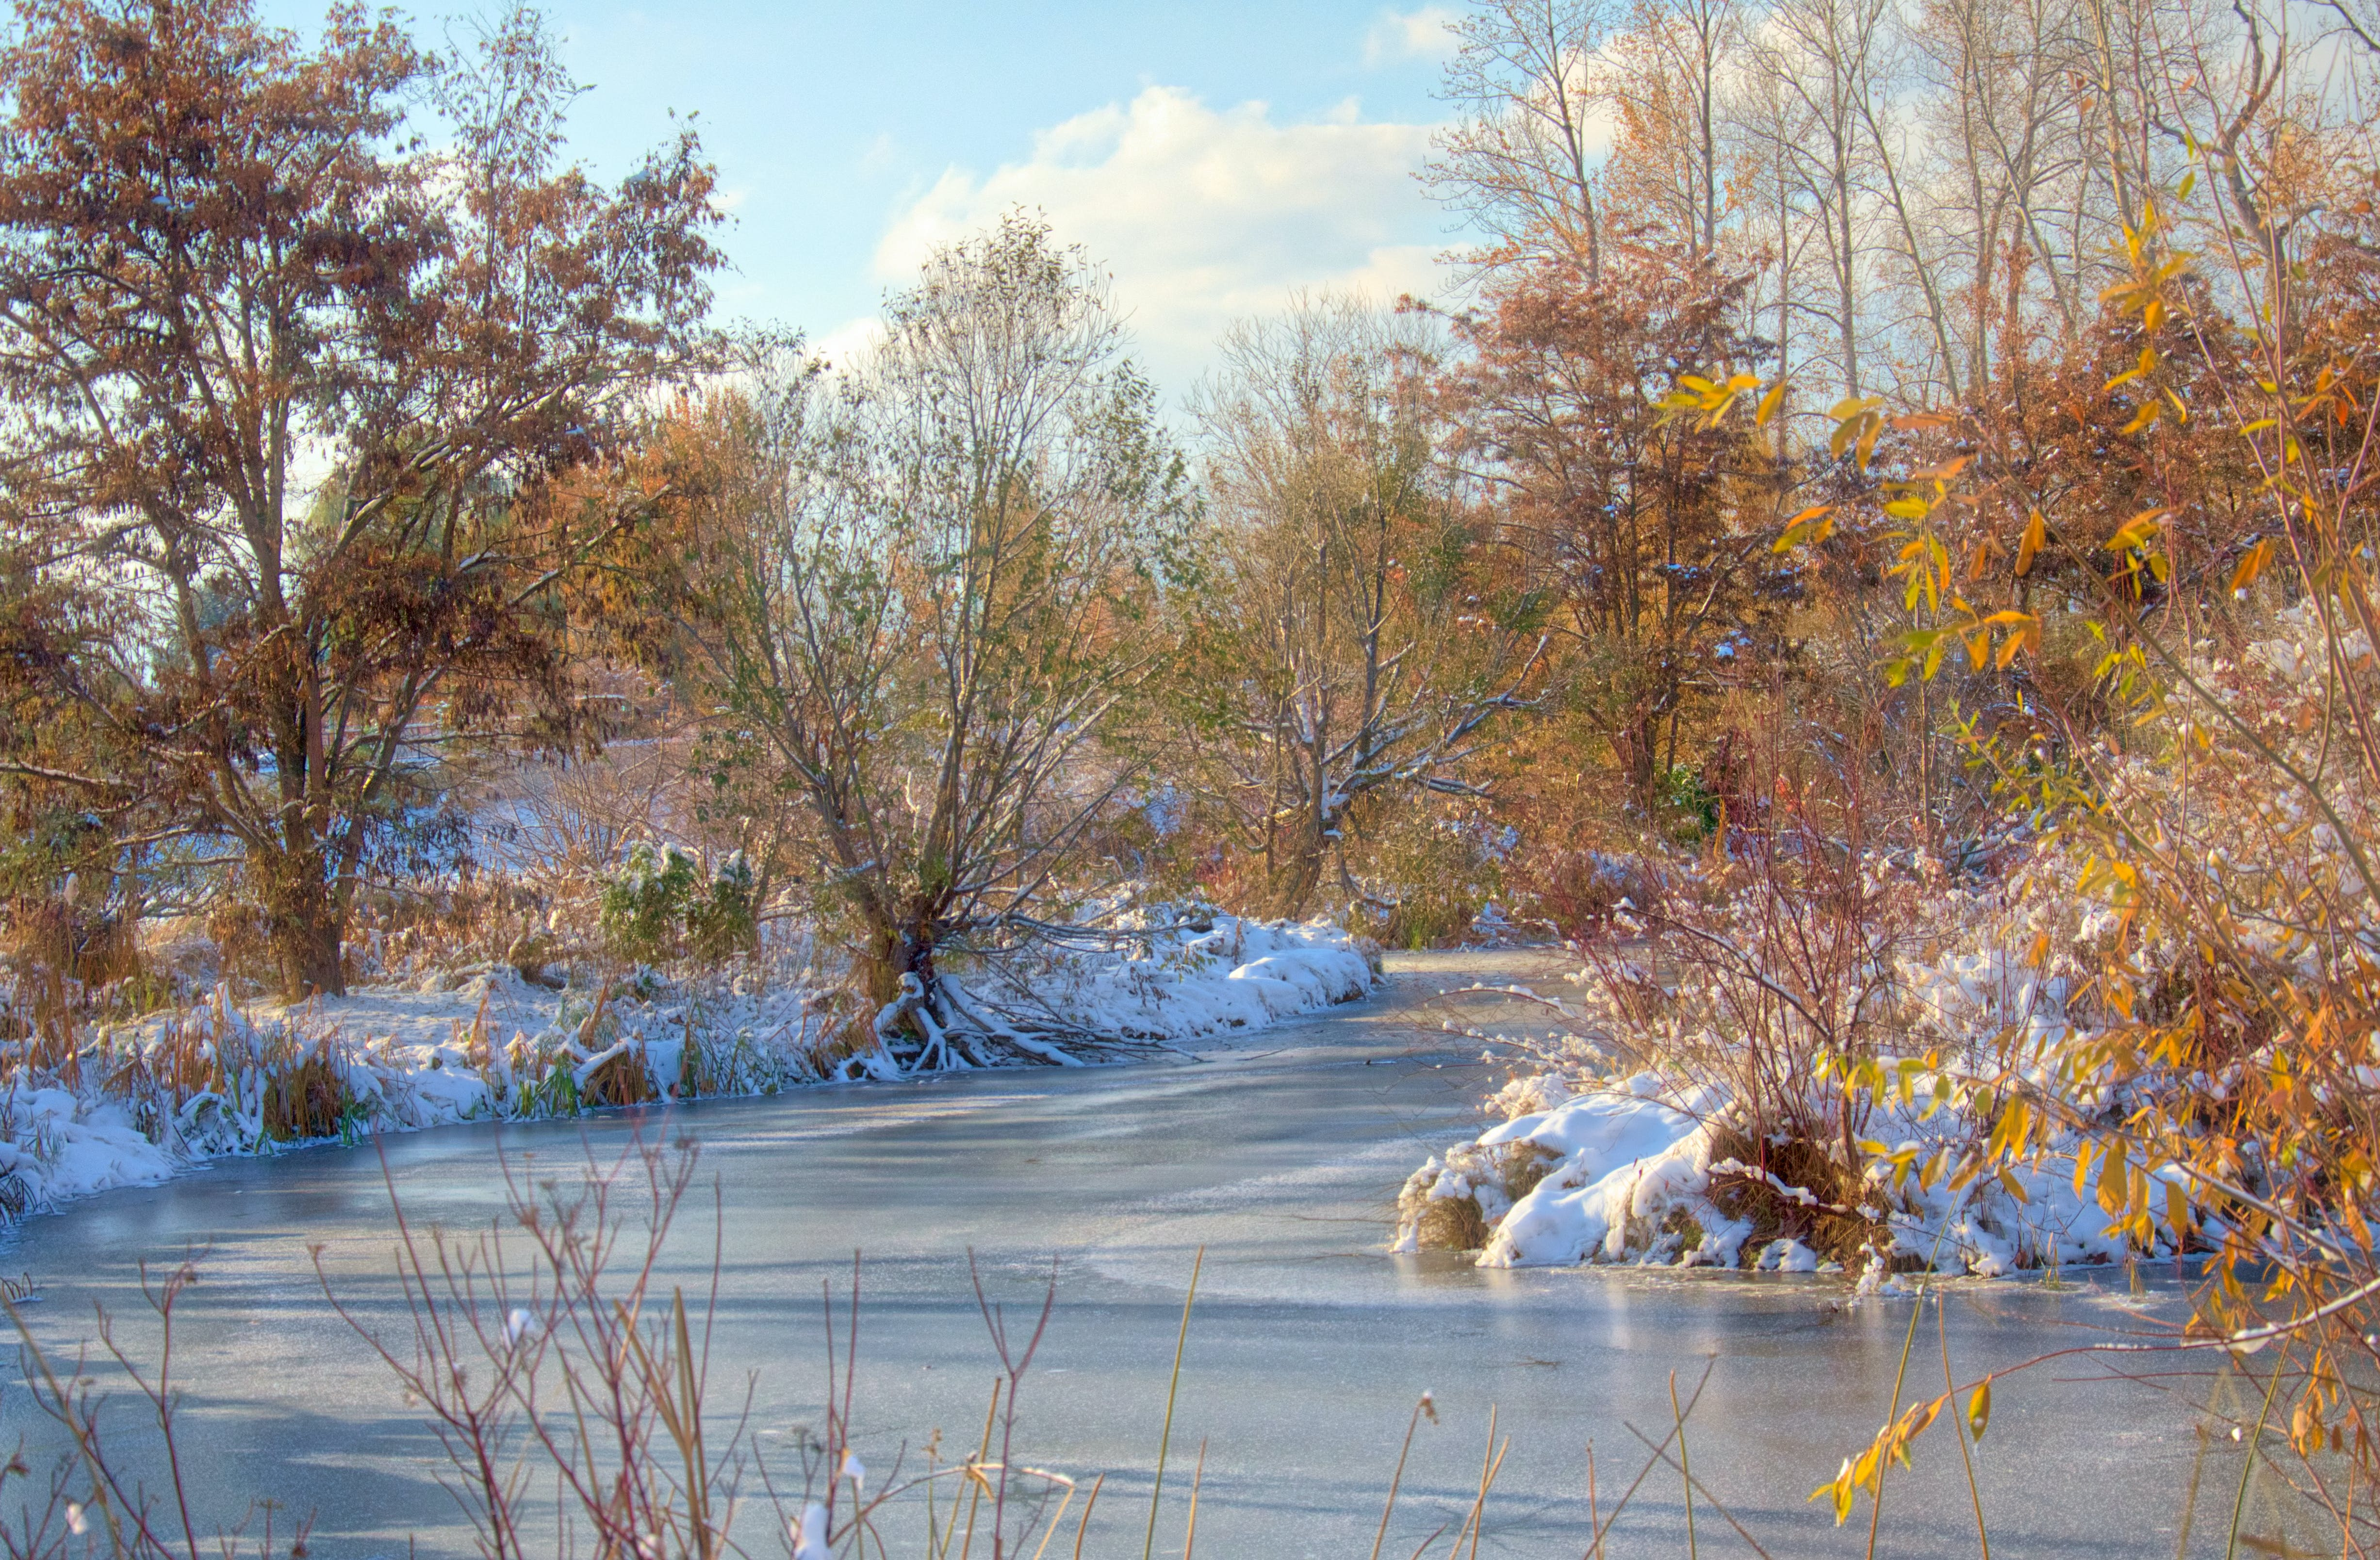 Free stock photo of winter fall water trees ice snow creek river